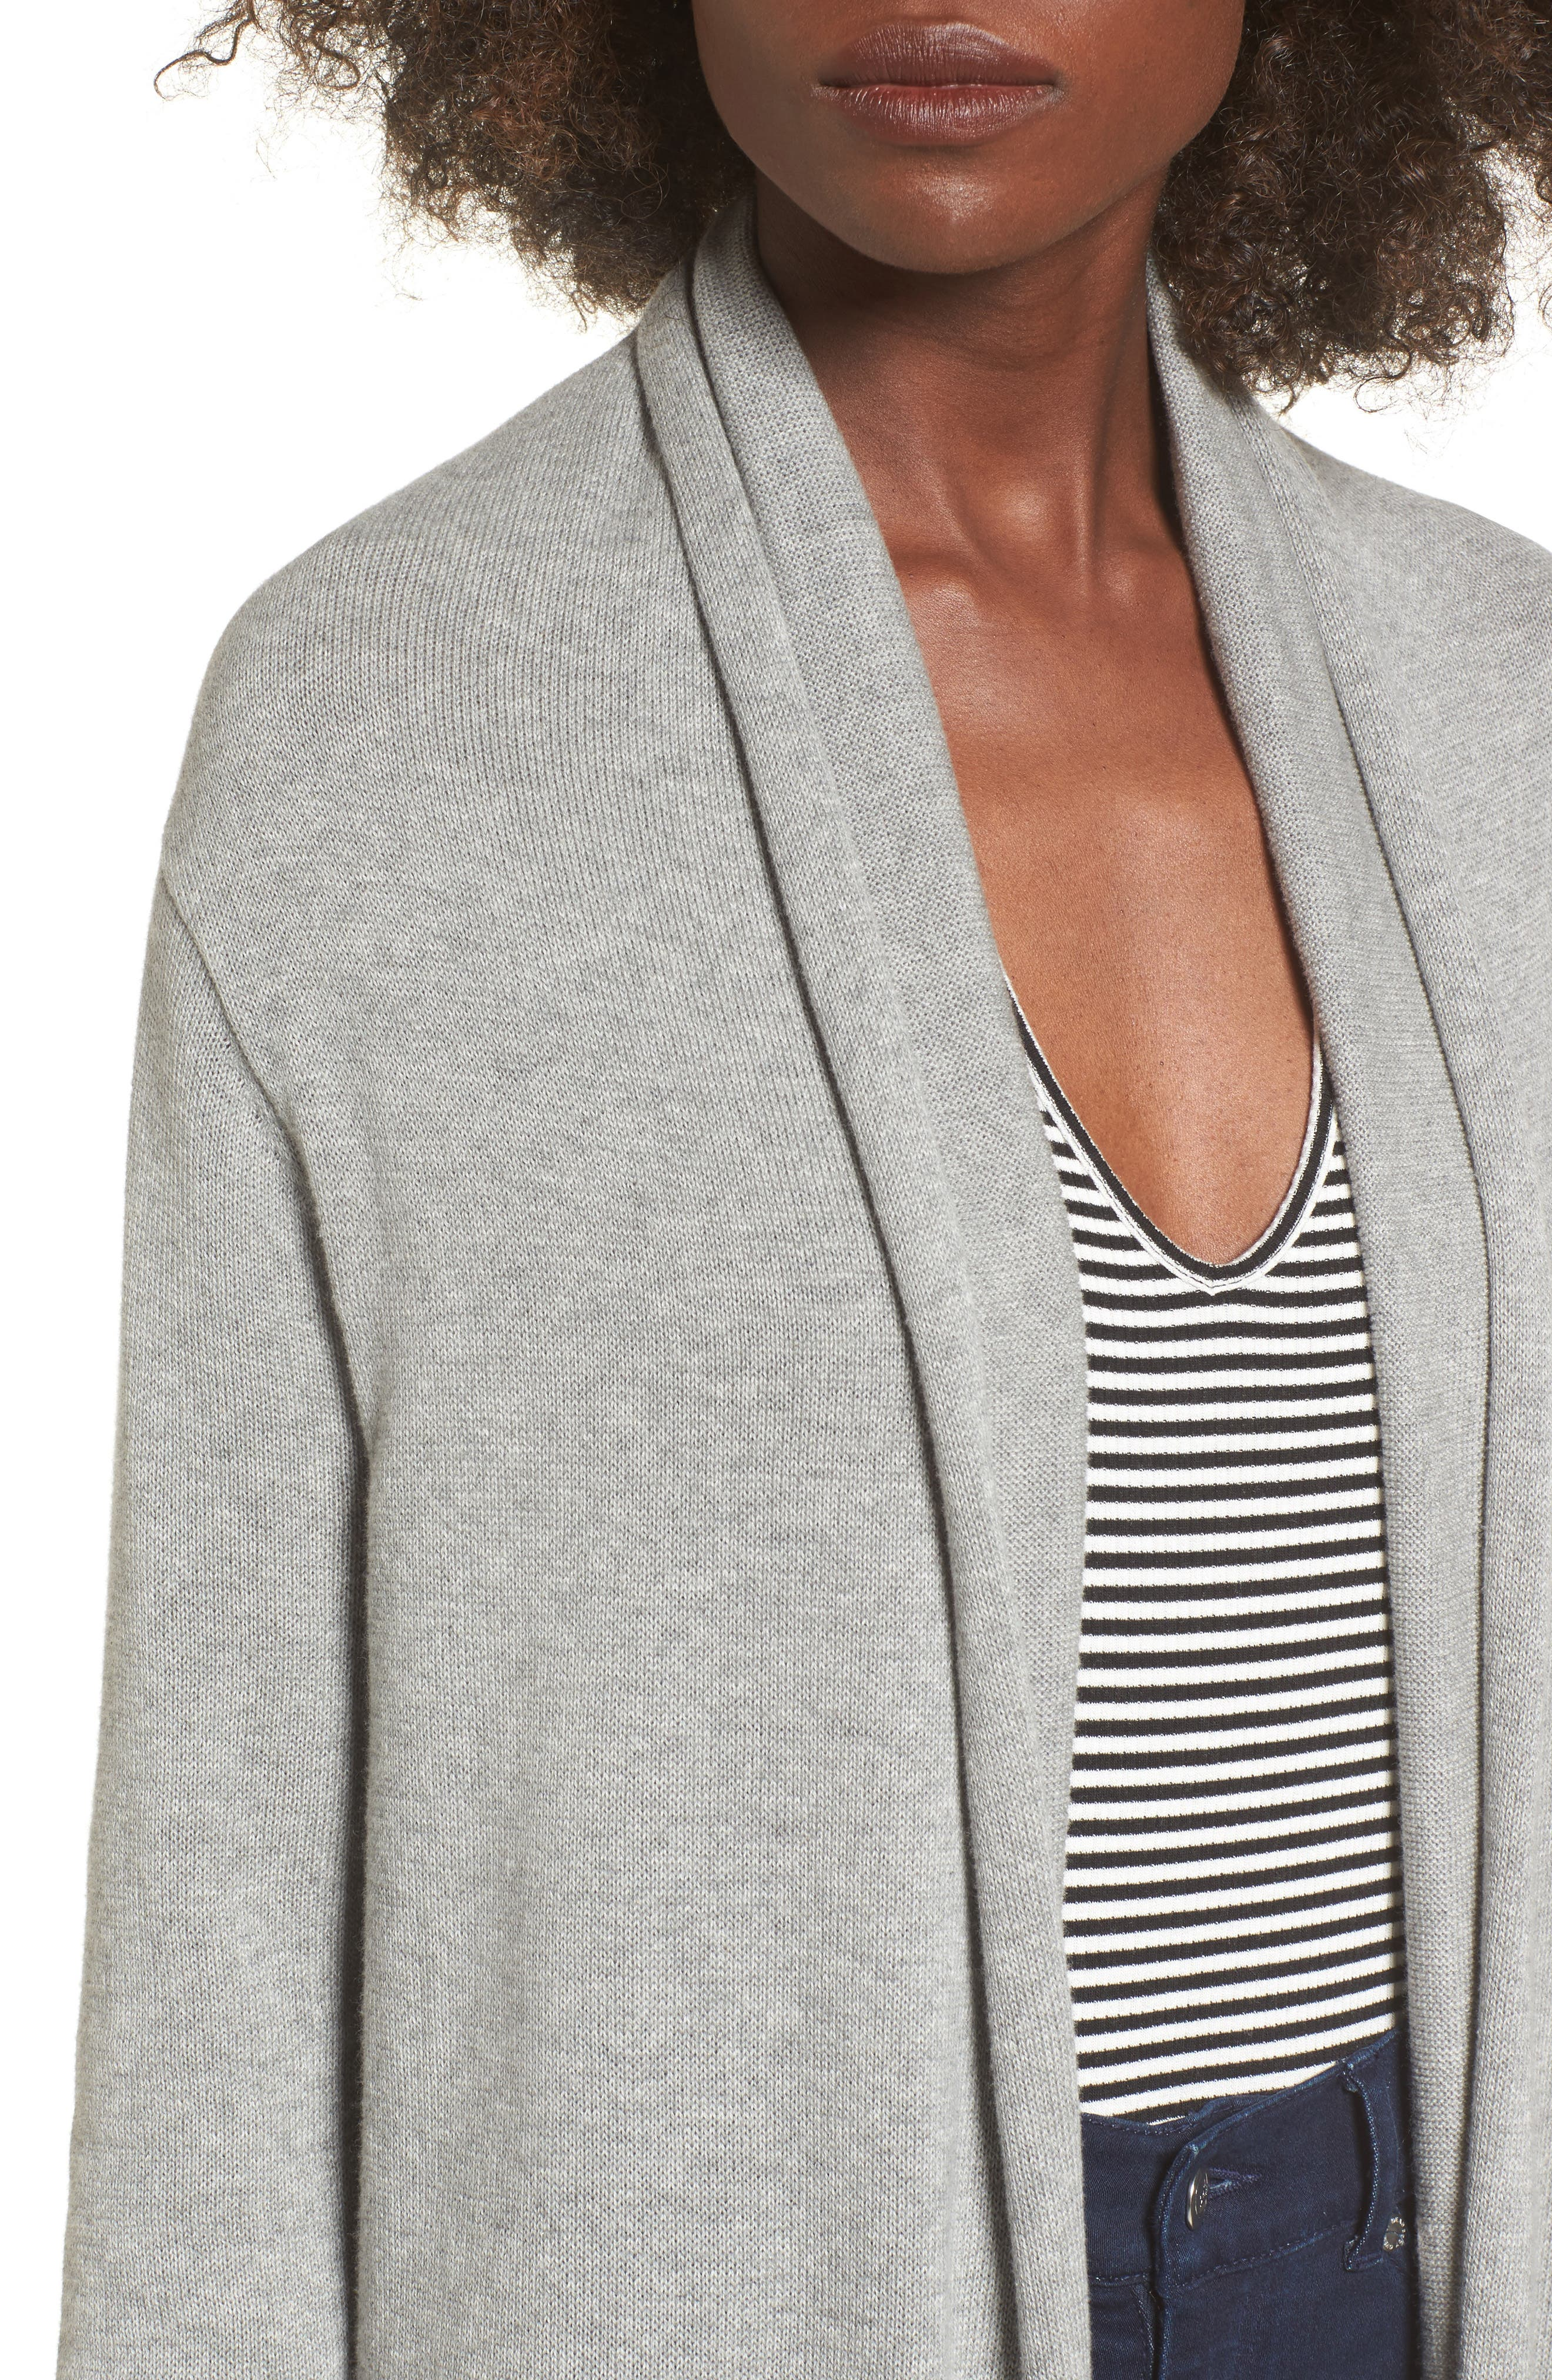 Cocoon Cardigan,                             Alternate thumbnail 4, color,                             Grey Medium Heather